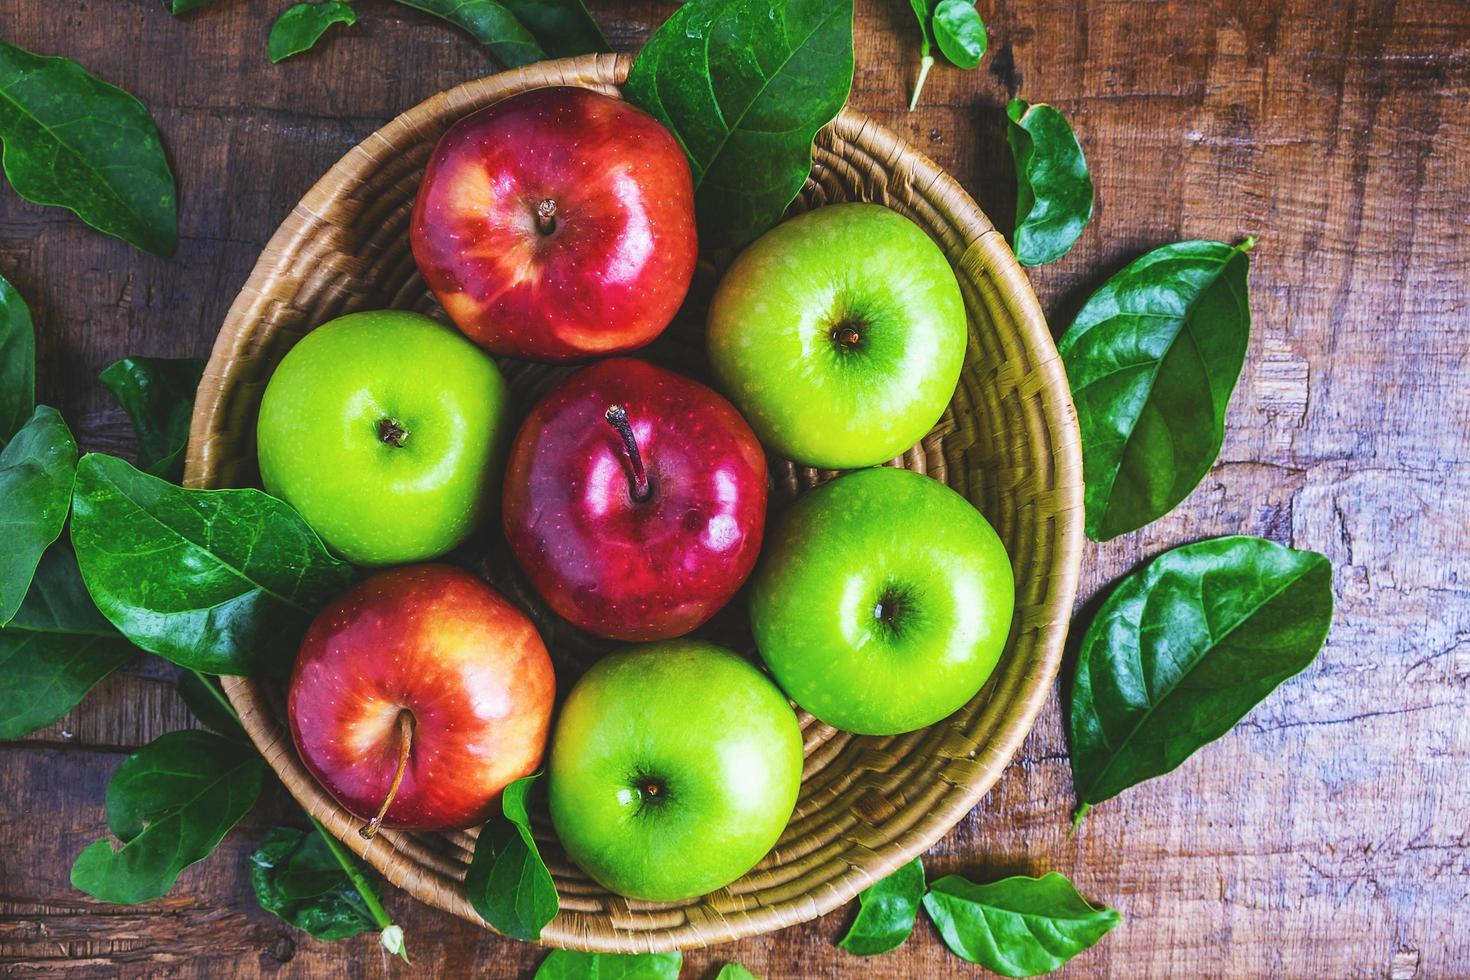 Basket of green and red apples photo